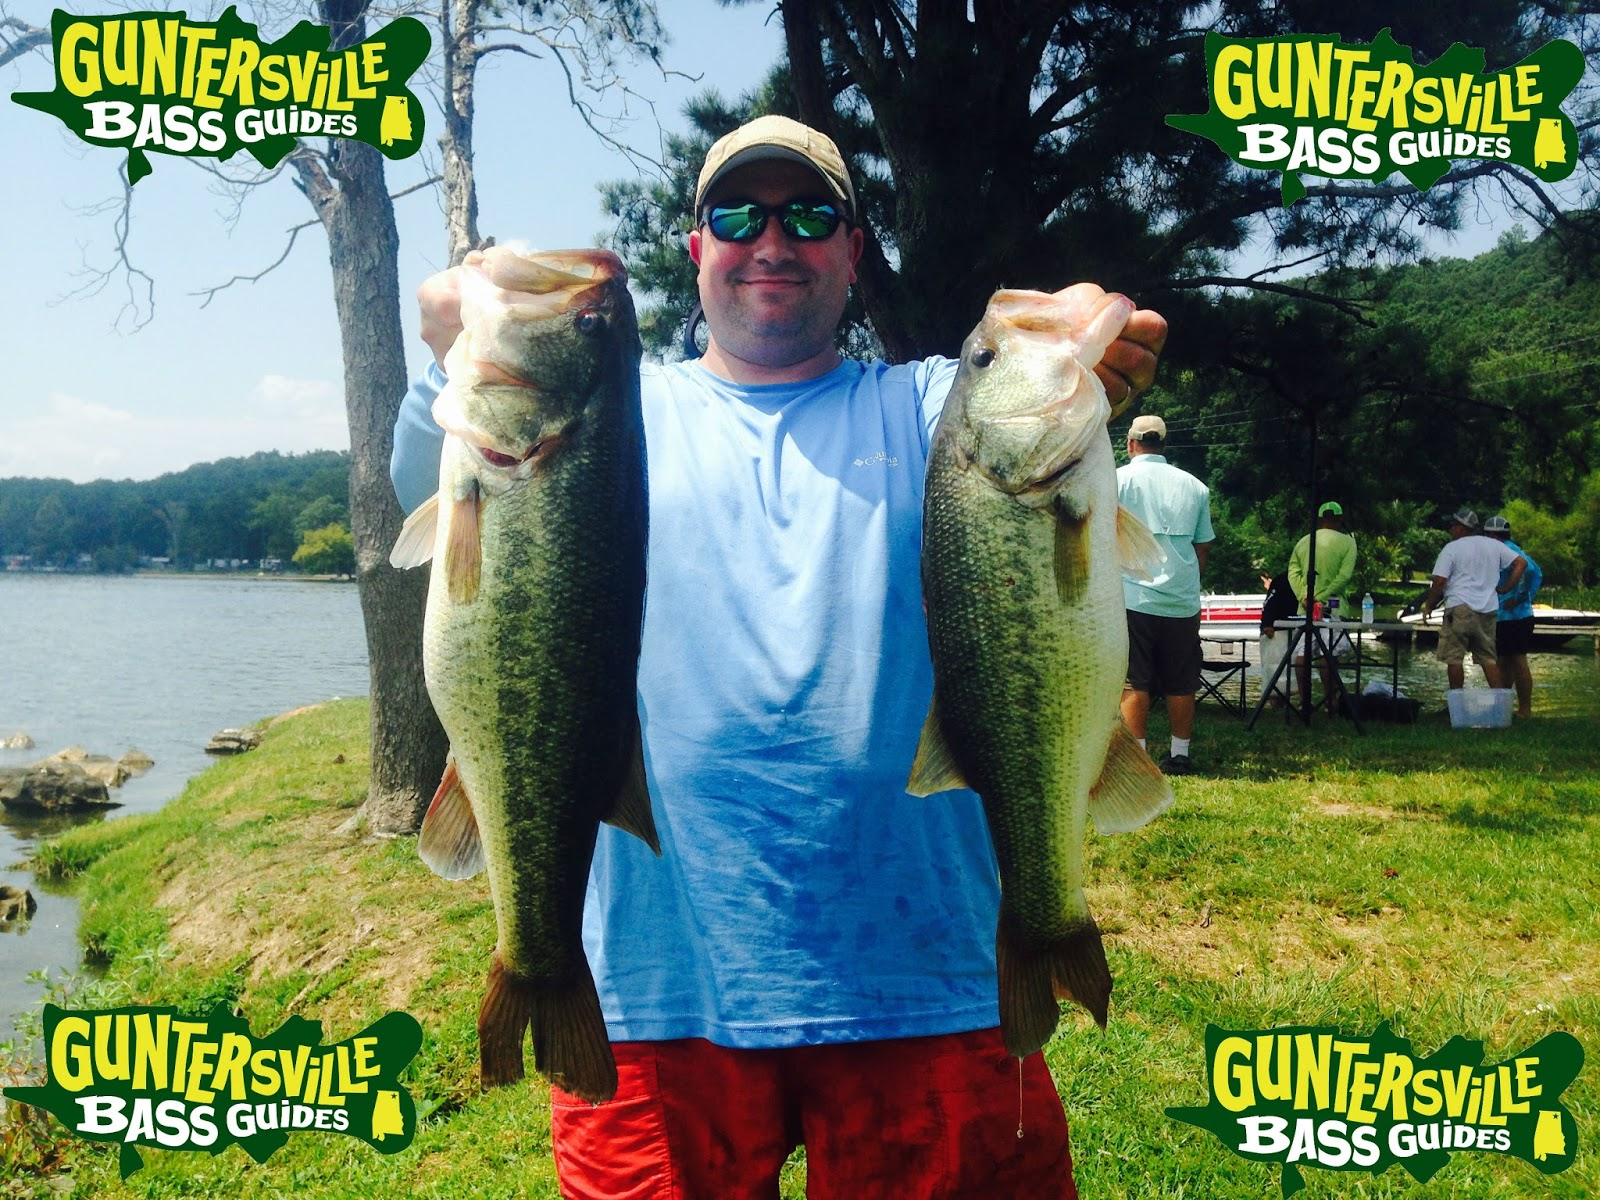 Lake guntersville fishing report guntersville bass guides for Kaw lake fishing report